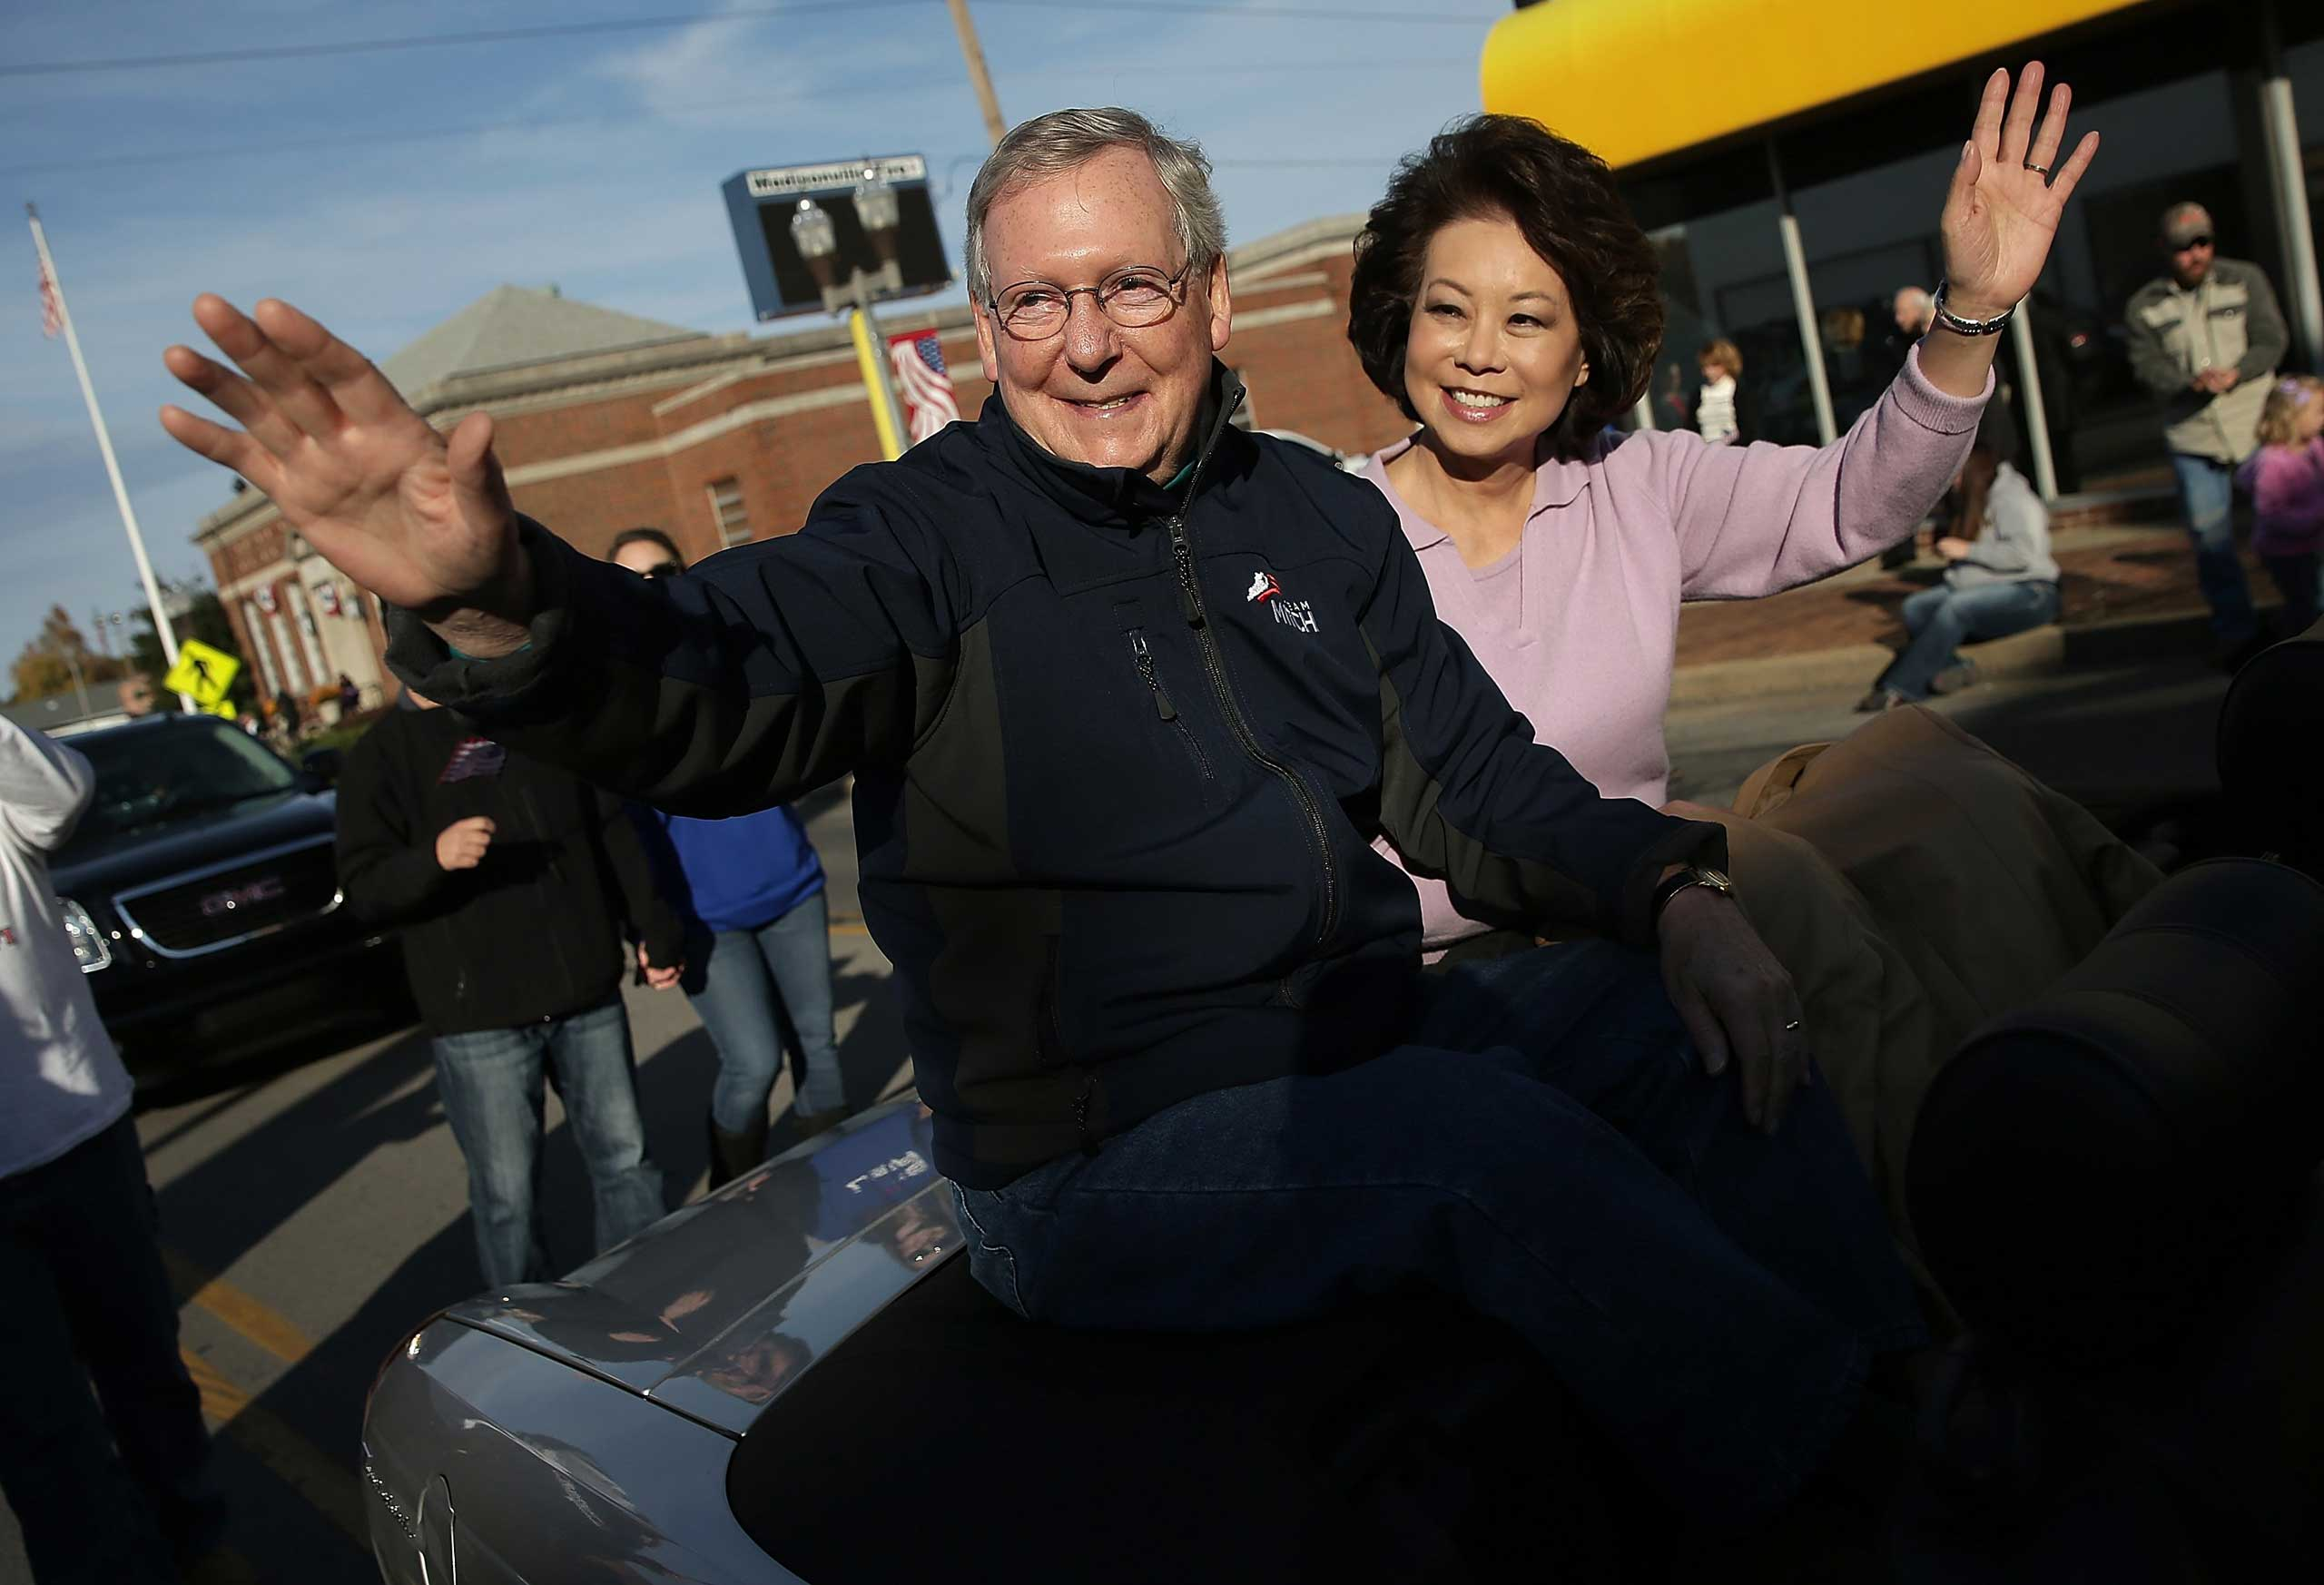 Senate Minority Leader Mitch McConnell (R-KY) waves while riding with his wife Elaine Chao (R) in the Hopkins Country Veterans Day Parade on November 2, 2014 in Madisonville, Ky.